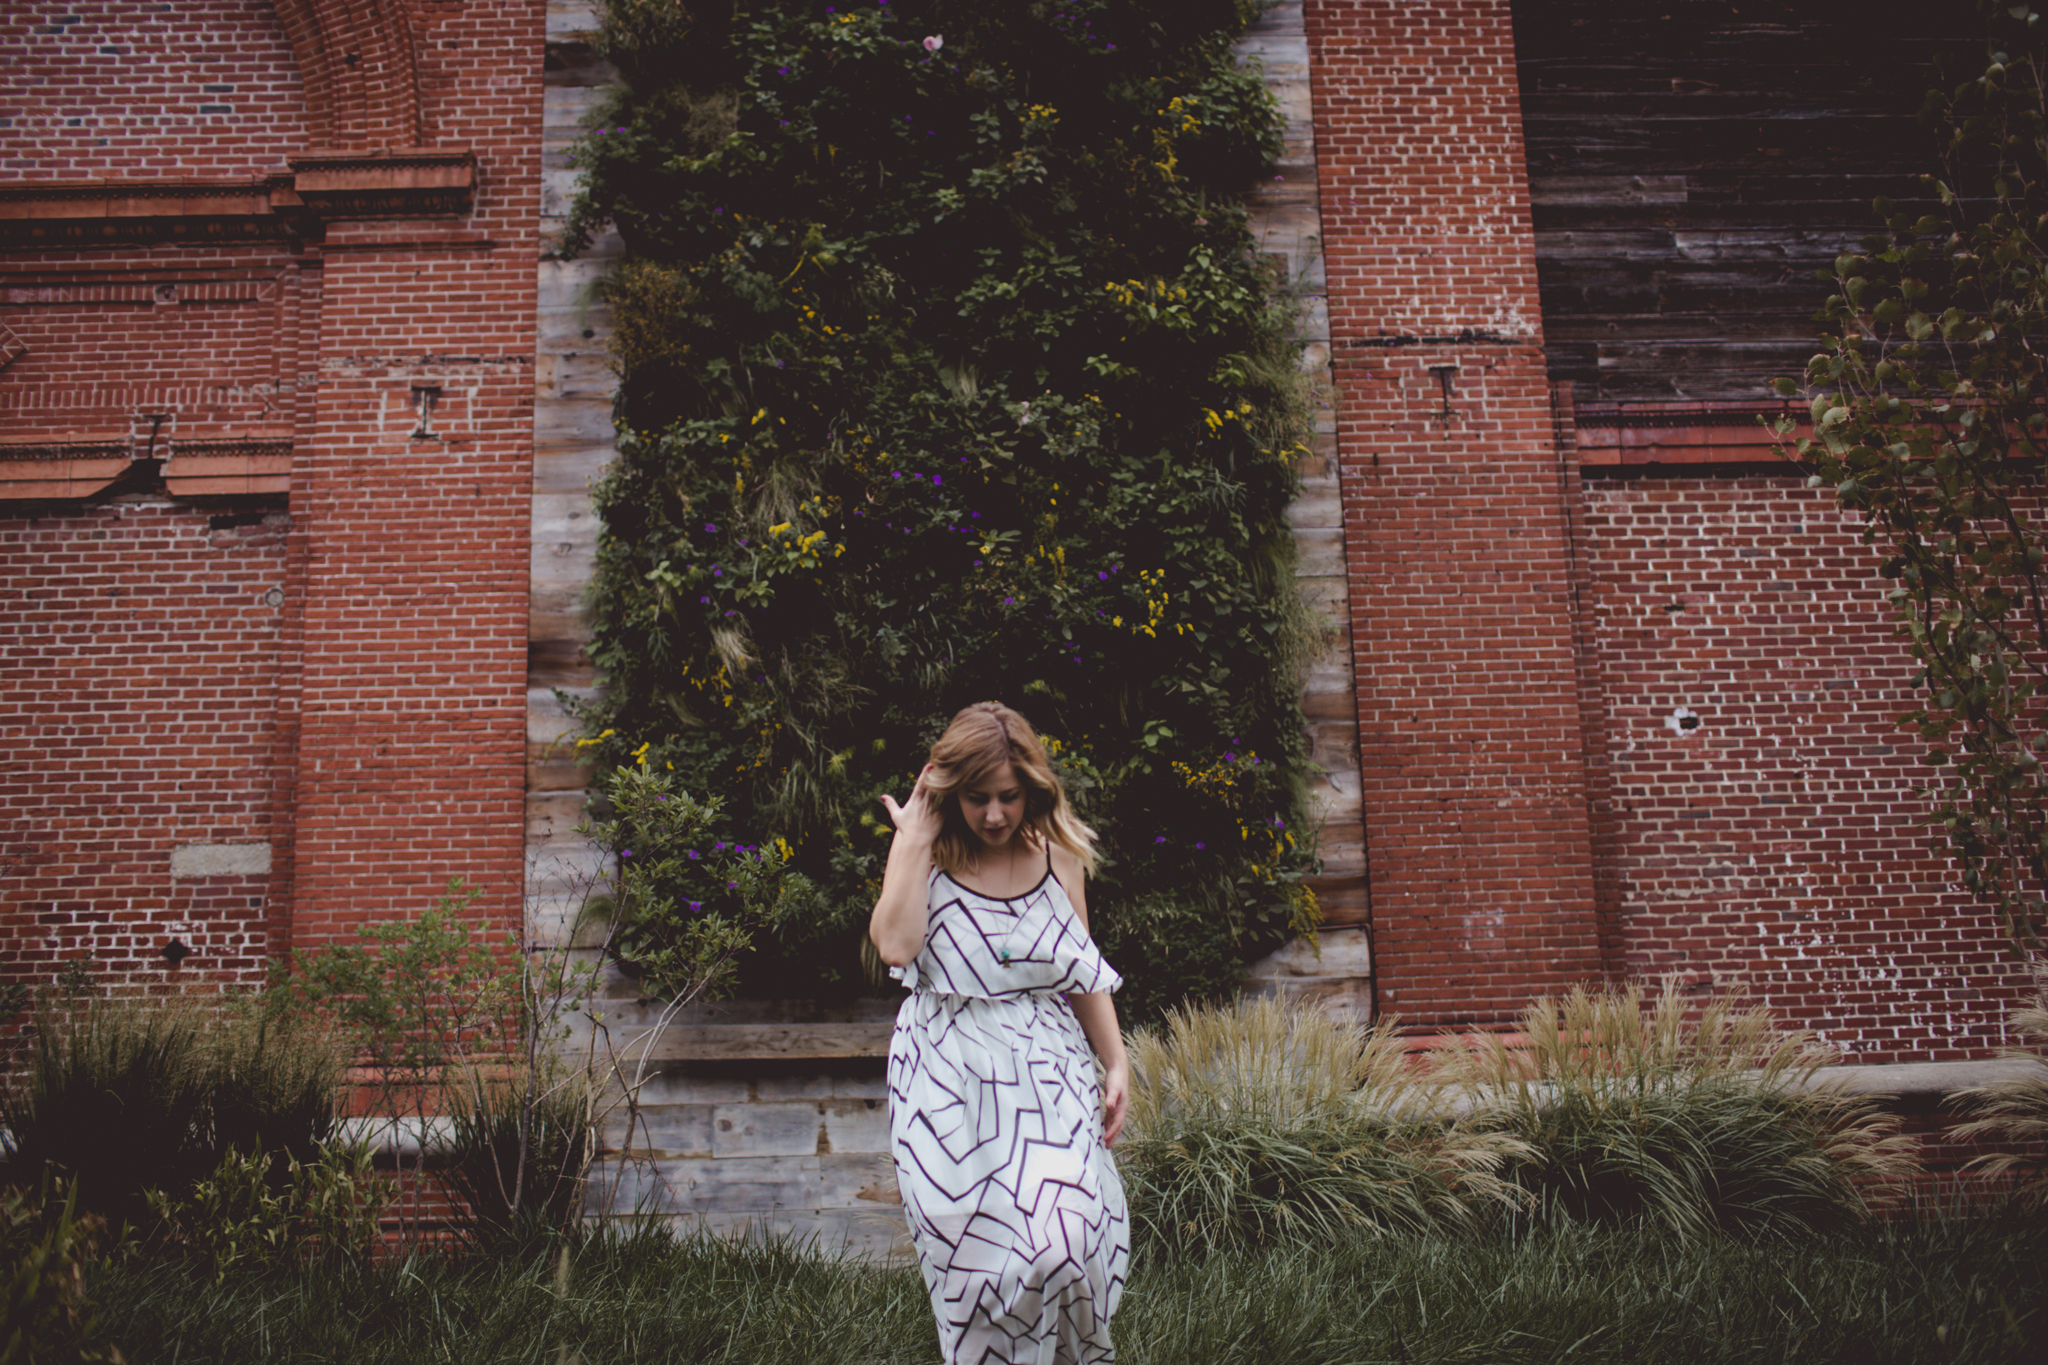 Cambria_Philly_Engagement_Photography-7667.jpg